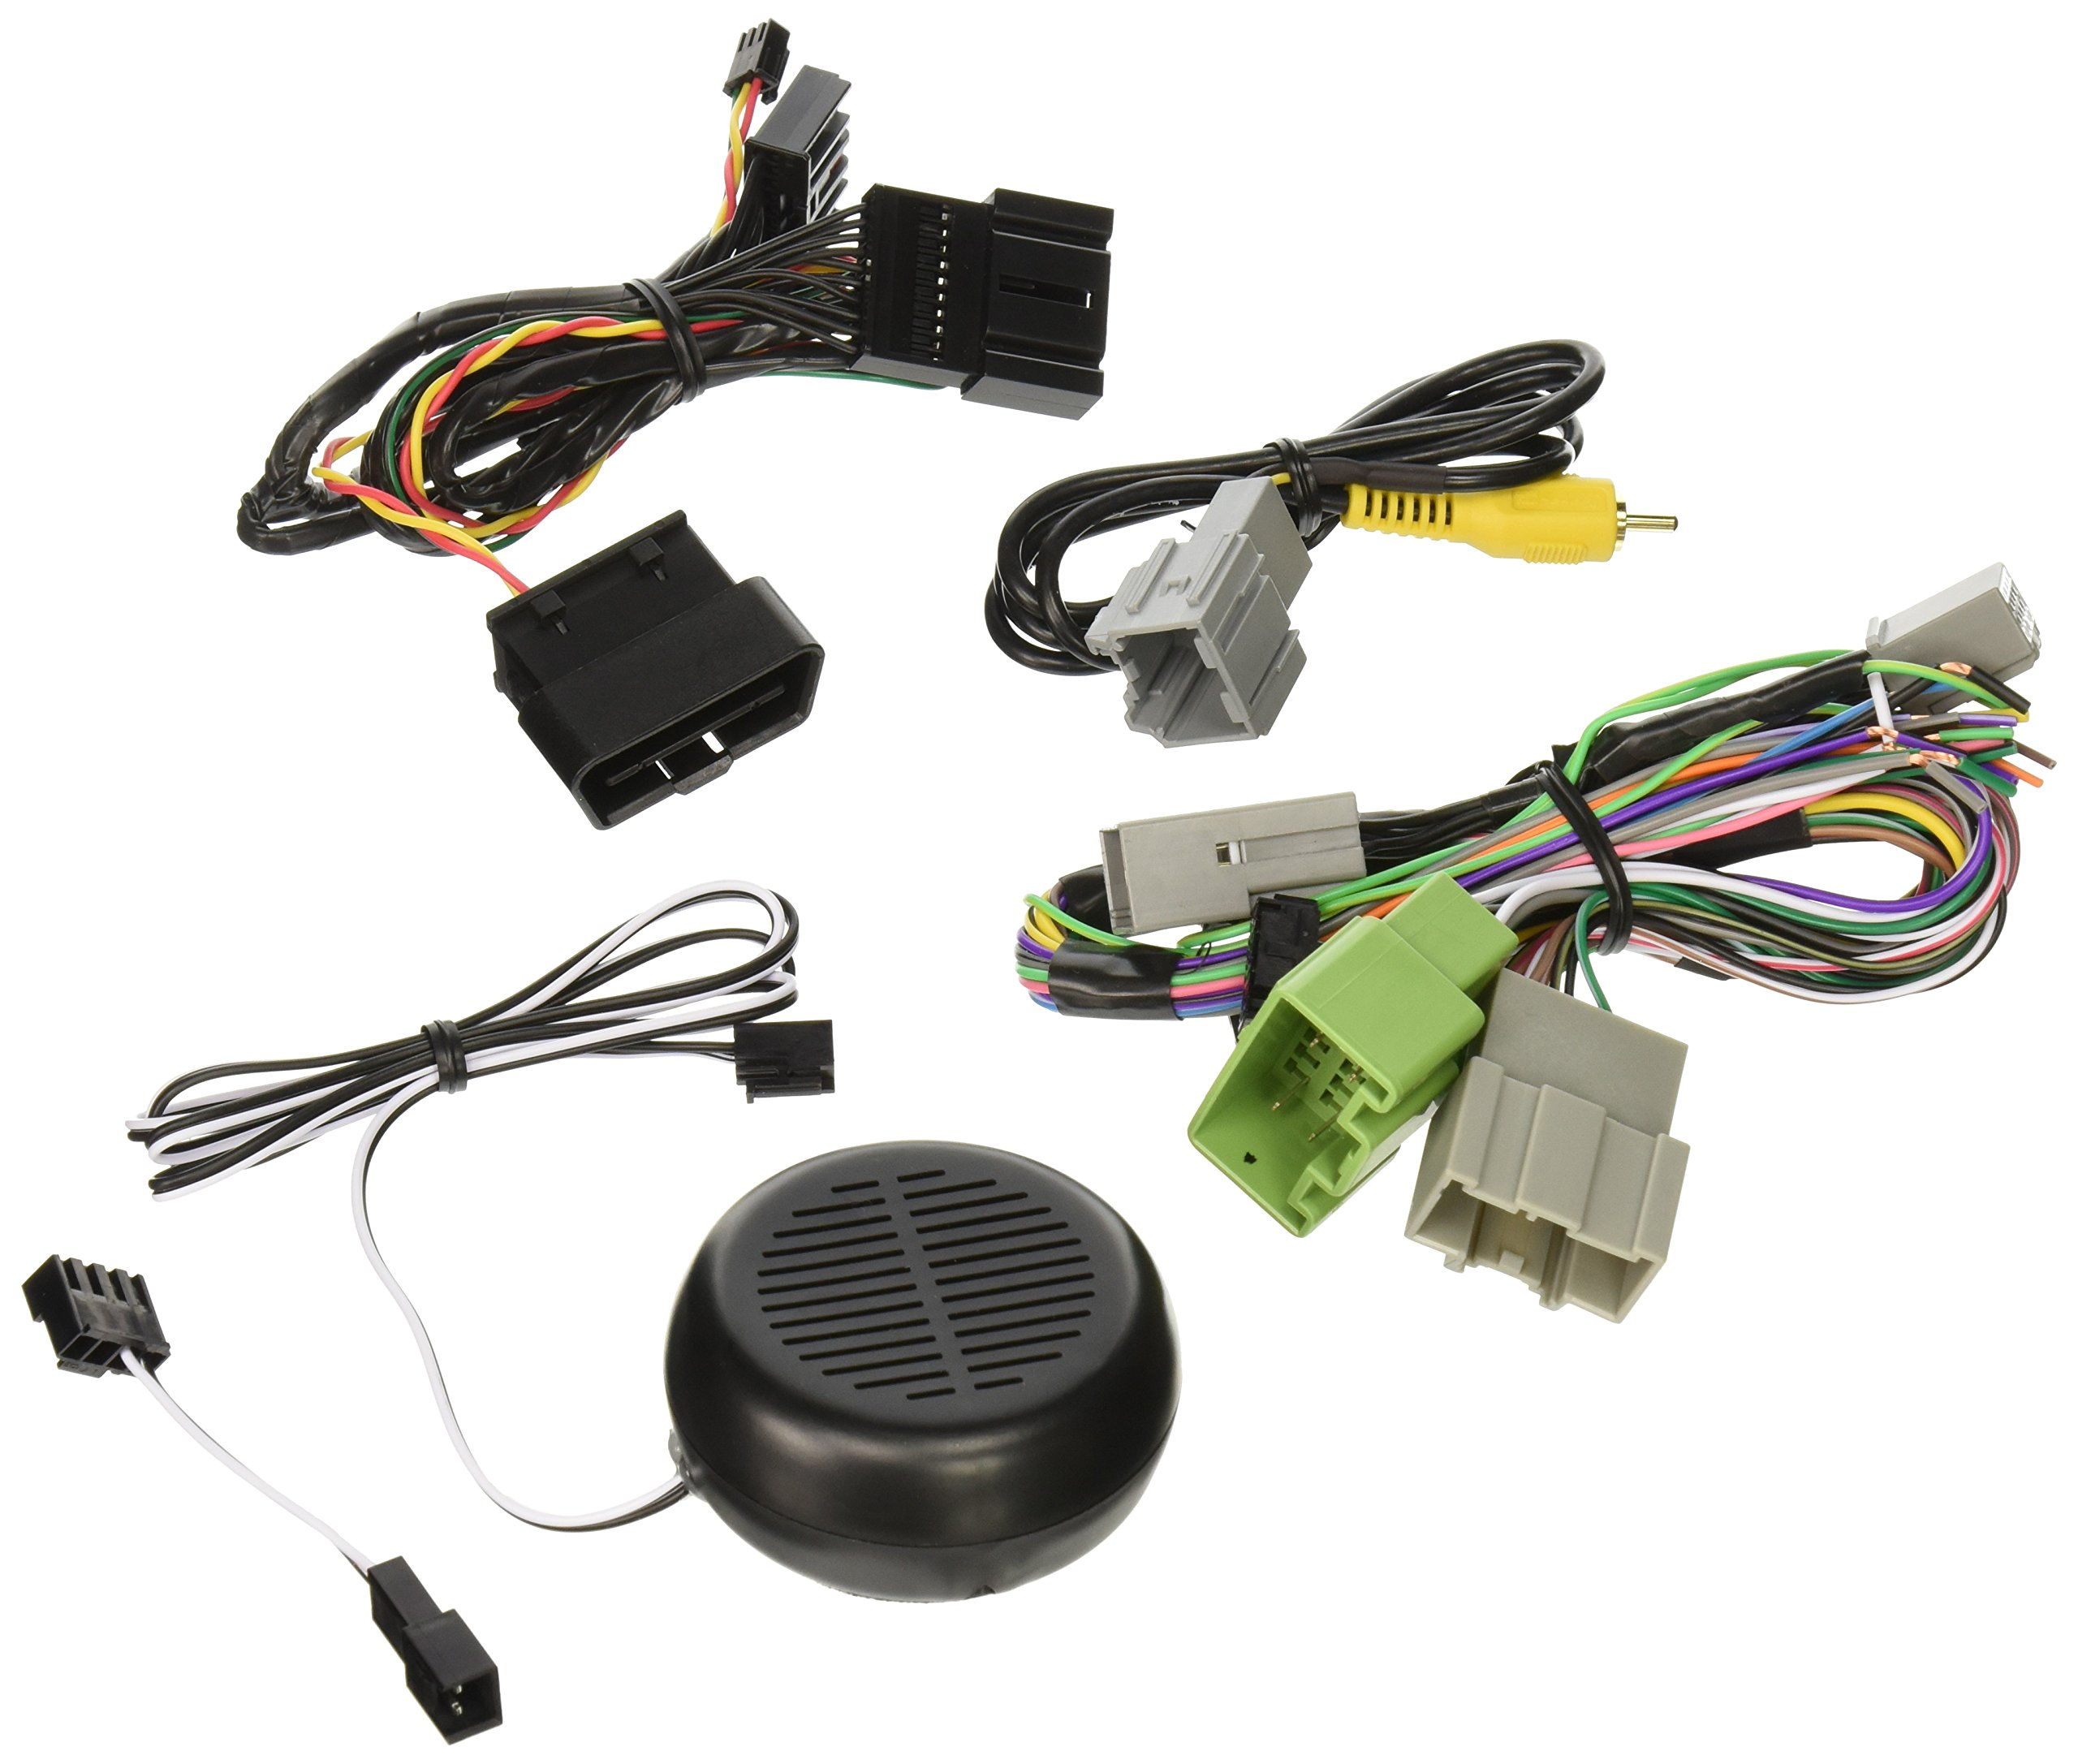 Maestro HRN-RR-GM3 Plug and Play T-Harness for GM3 Vehicles, with Speaker